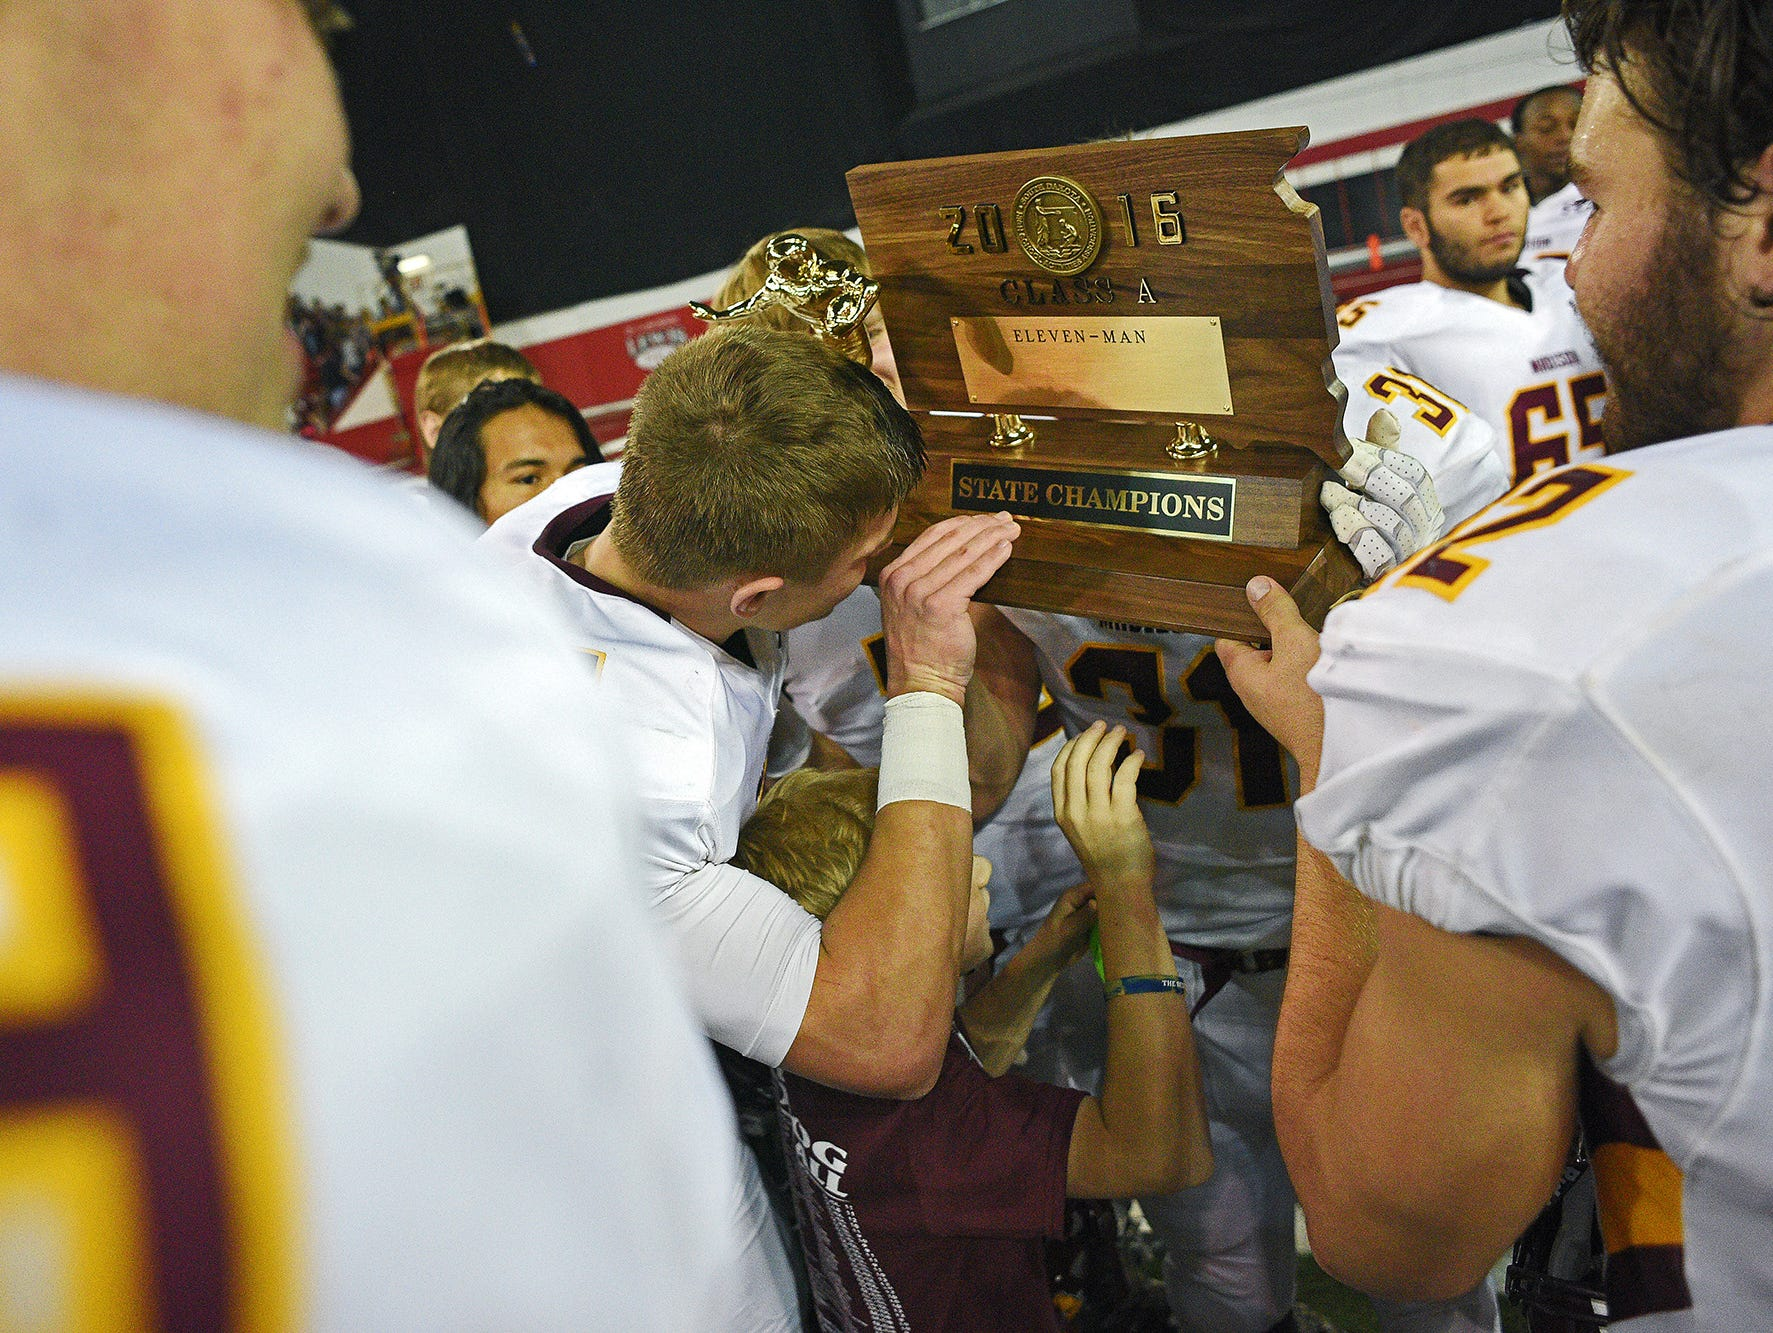 Madison's Jaxon Janke (6) kisses their trophy while celebrating their 39-0 win over Tea Area with their fans and families after the 2016 South Dakota State Class 11A Football Championship game Saturday, Nov. 12, 2016, at the DakotaDome on the University of South Dakota campus in Vermillion, S.D.